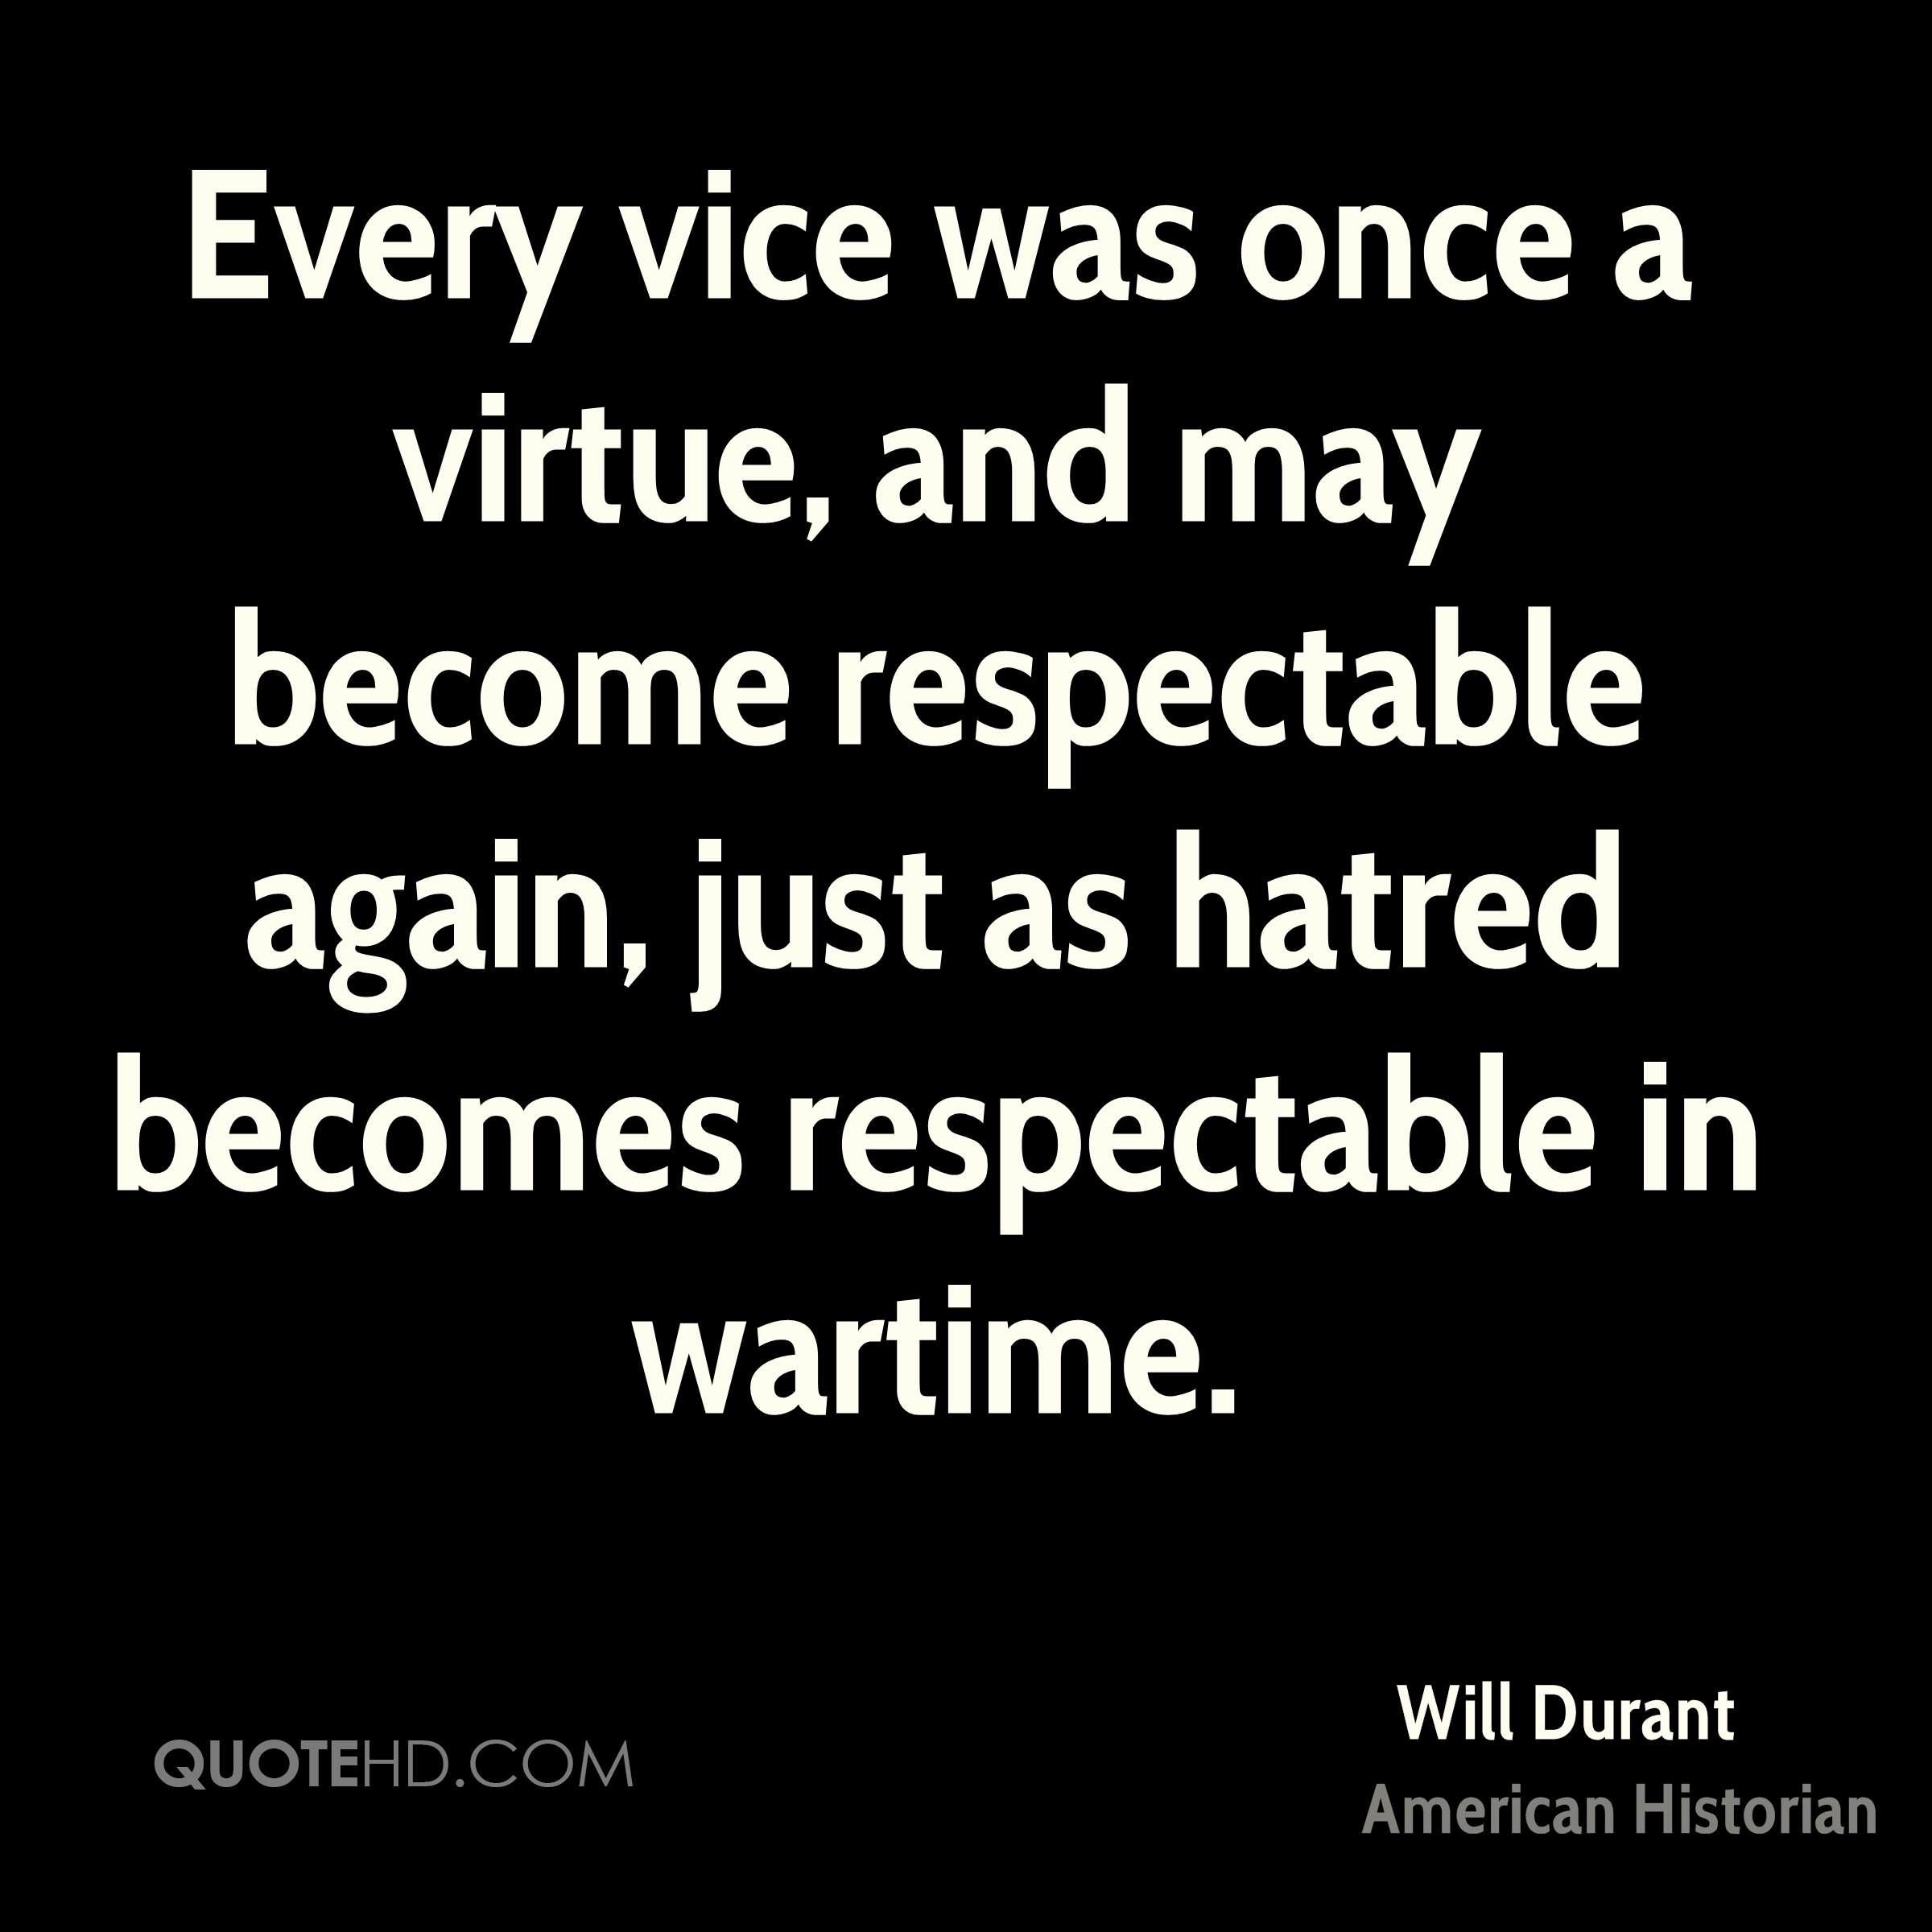 Every vice was once a virtue, and may become respectable again, just as hatred becomes respectable in wartime.